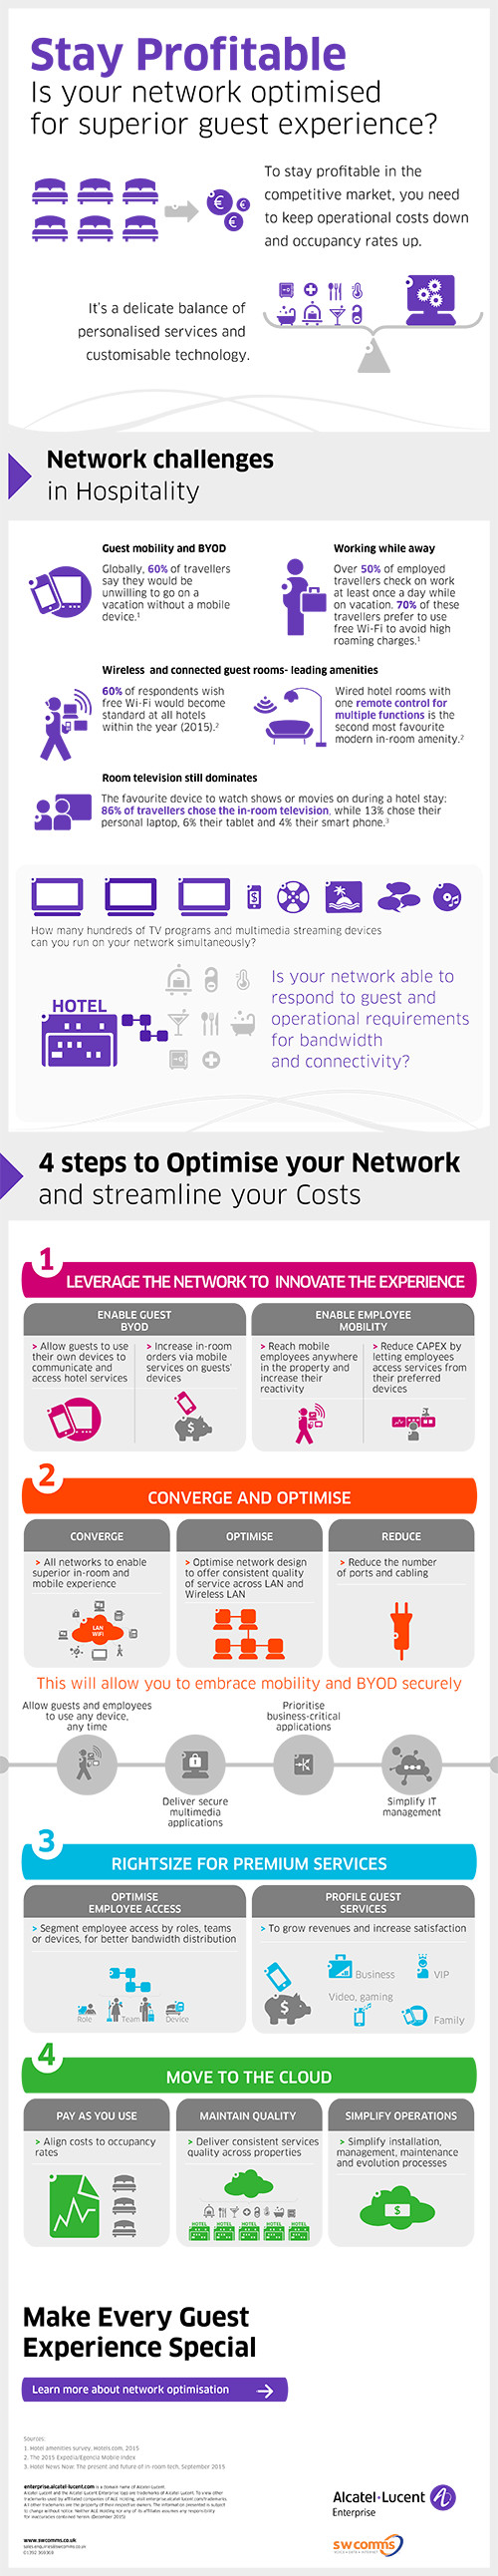 Infographic: is your hotel network optimised for a superior guest experience